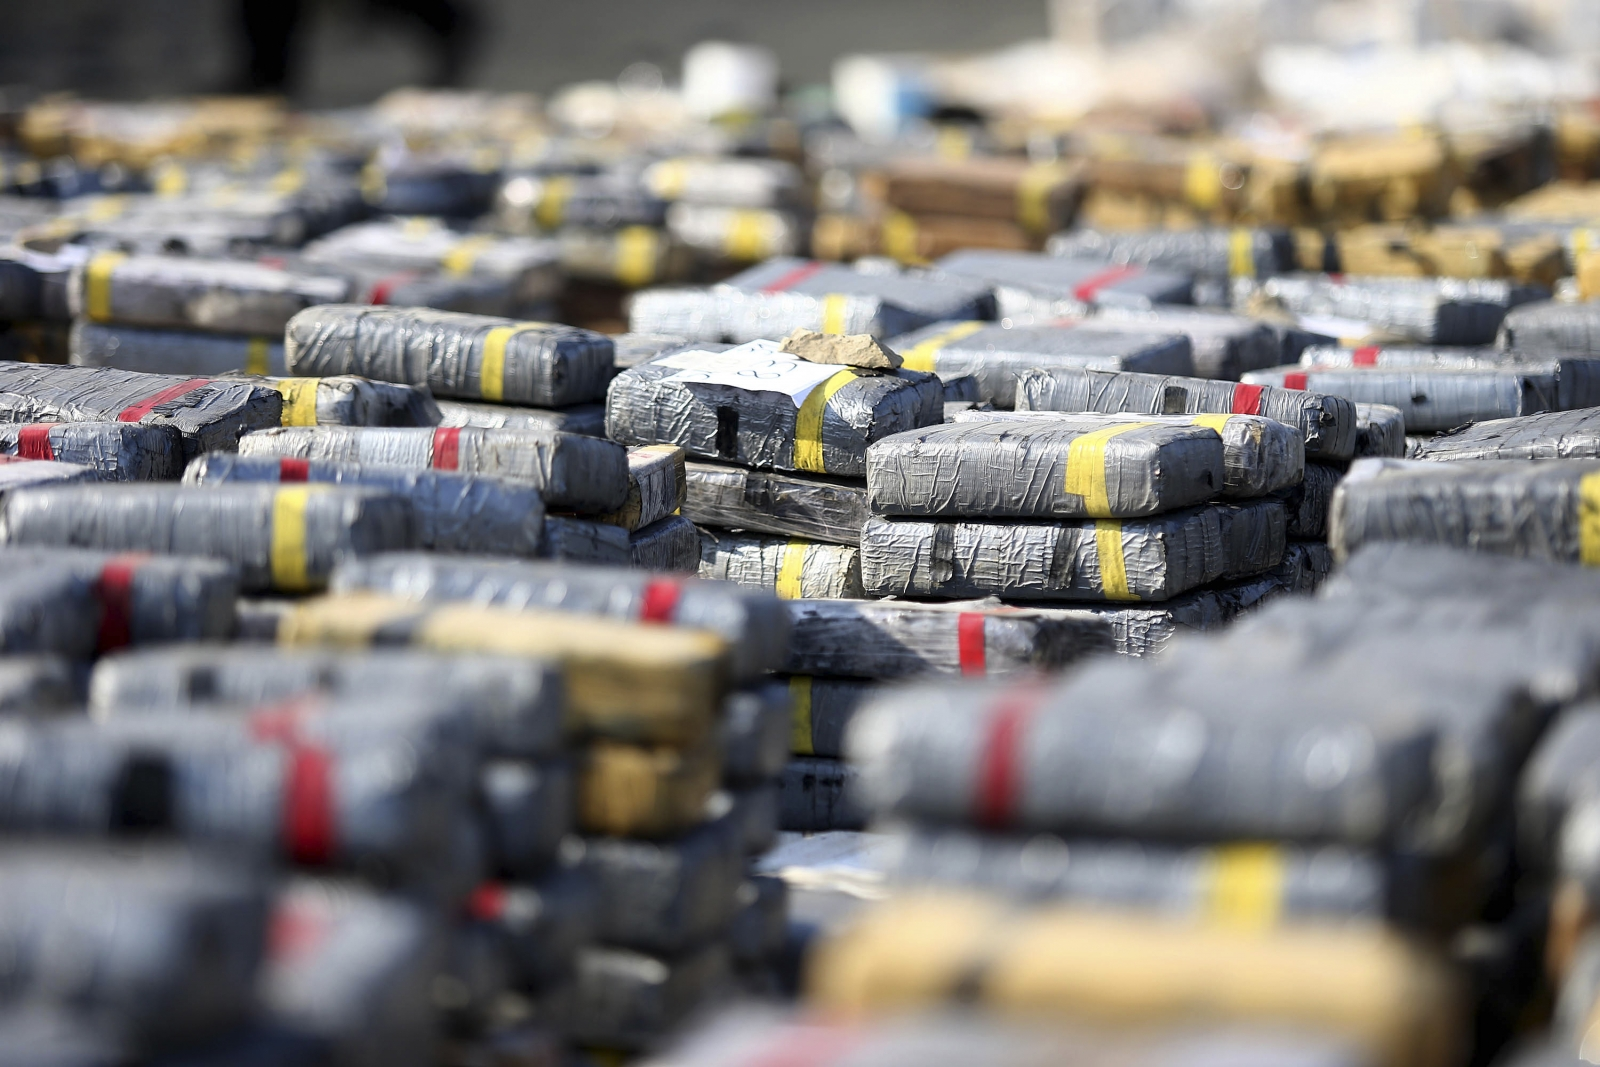 Cocaine seized by police in Huanchaco, Peru. (Reuters)